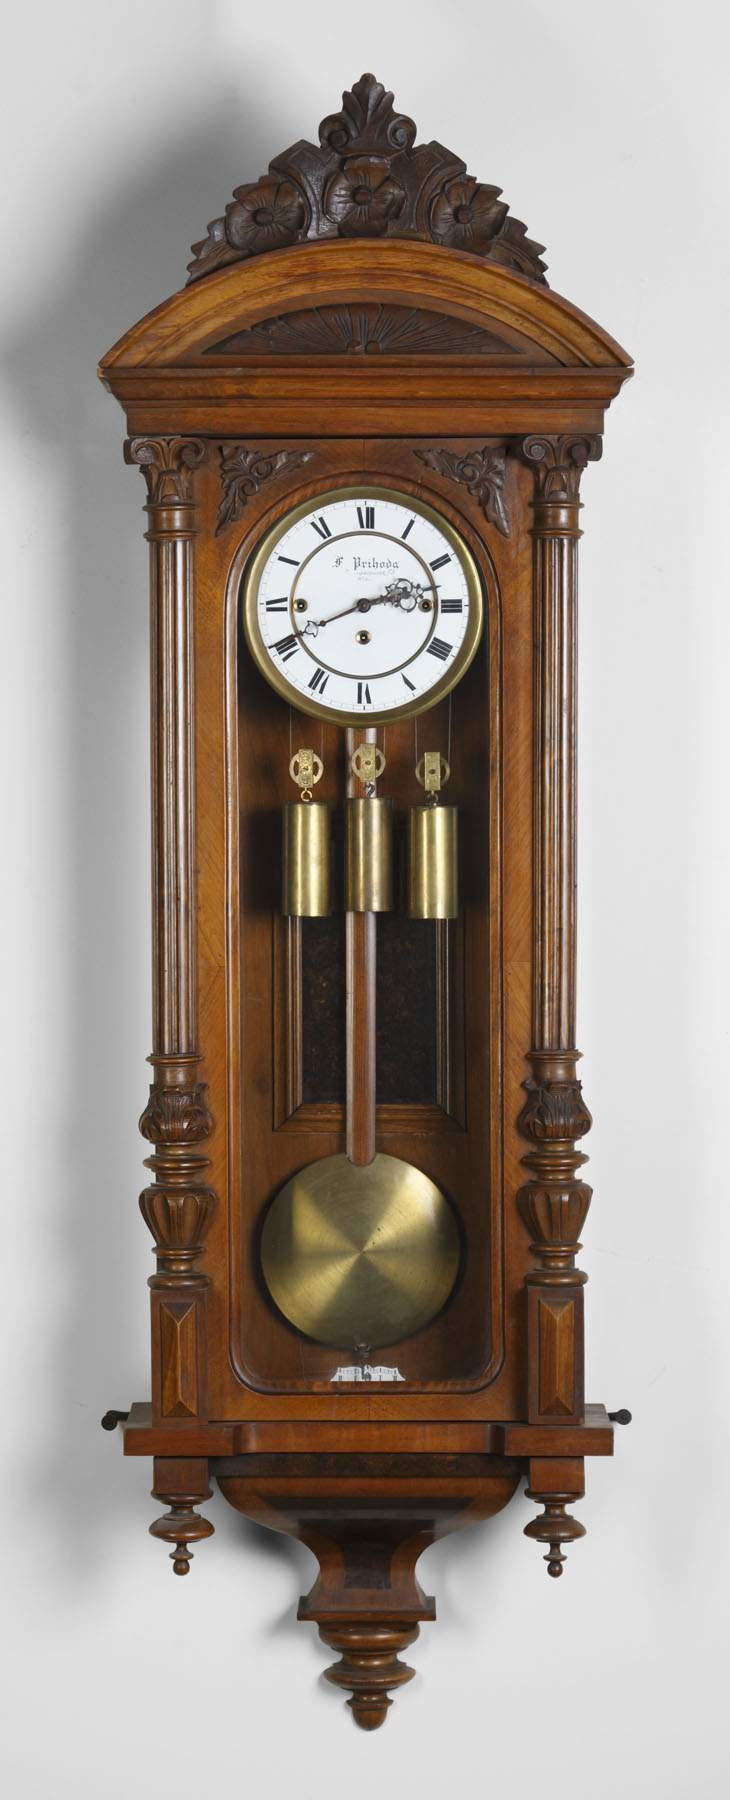 Vienna 3 weight regulator wall clock cottone auctions vienna 3 weight regulator wall clock amipublicfo Image collections